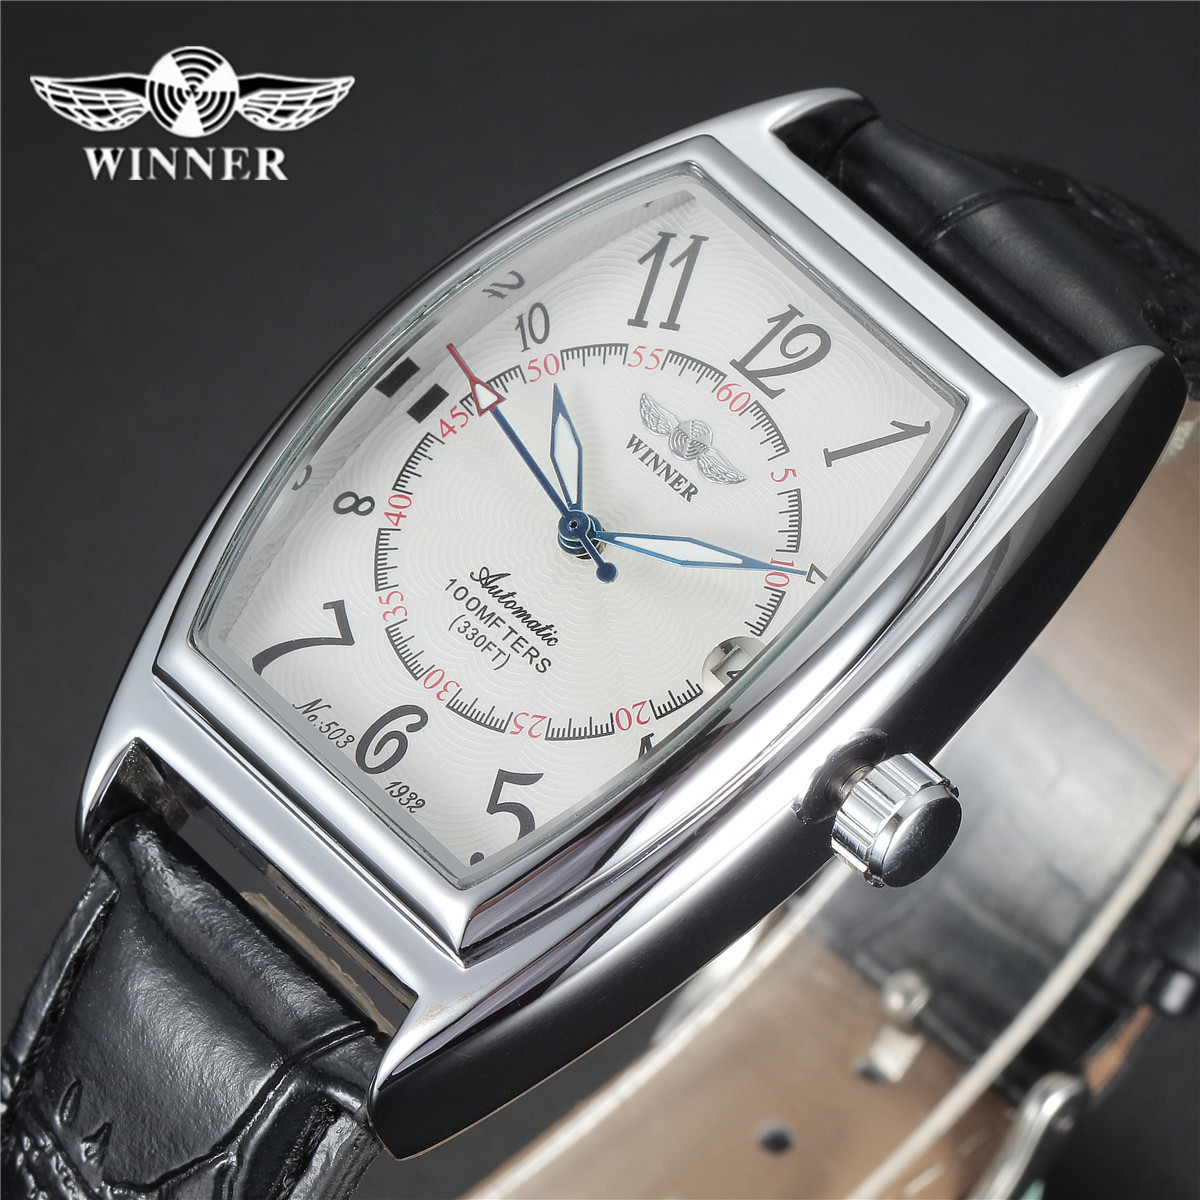 New WINNER Automatic Mechanical Watches Oval Dial Black Leather Strap Self wind AUTO Date Male Mens Wristwatch Relogio Masculino new binkada men s automatic mechanical watches black dial stainless steel strap hand wind male wristwatch relogio masculino